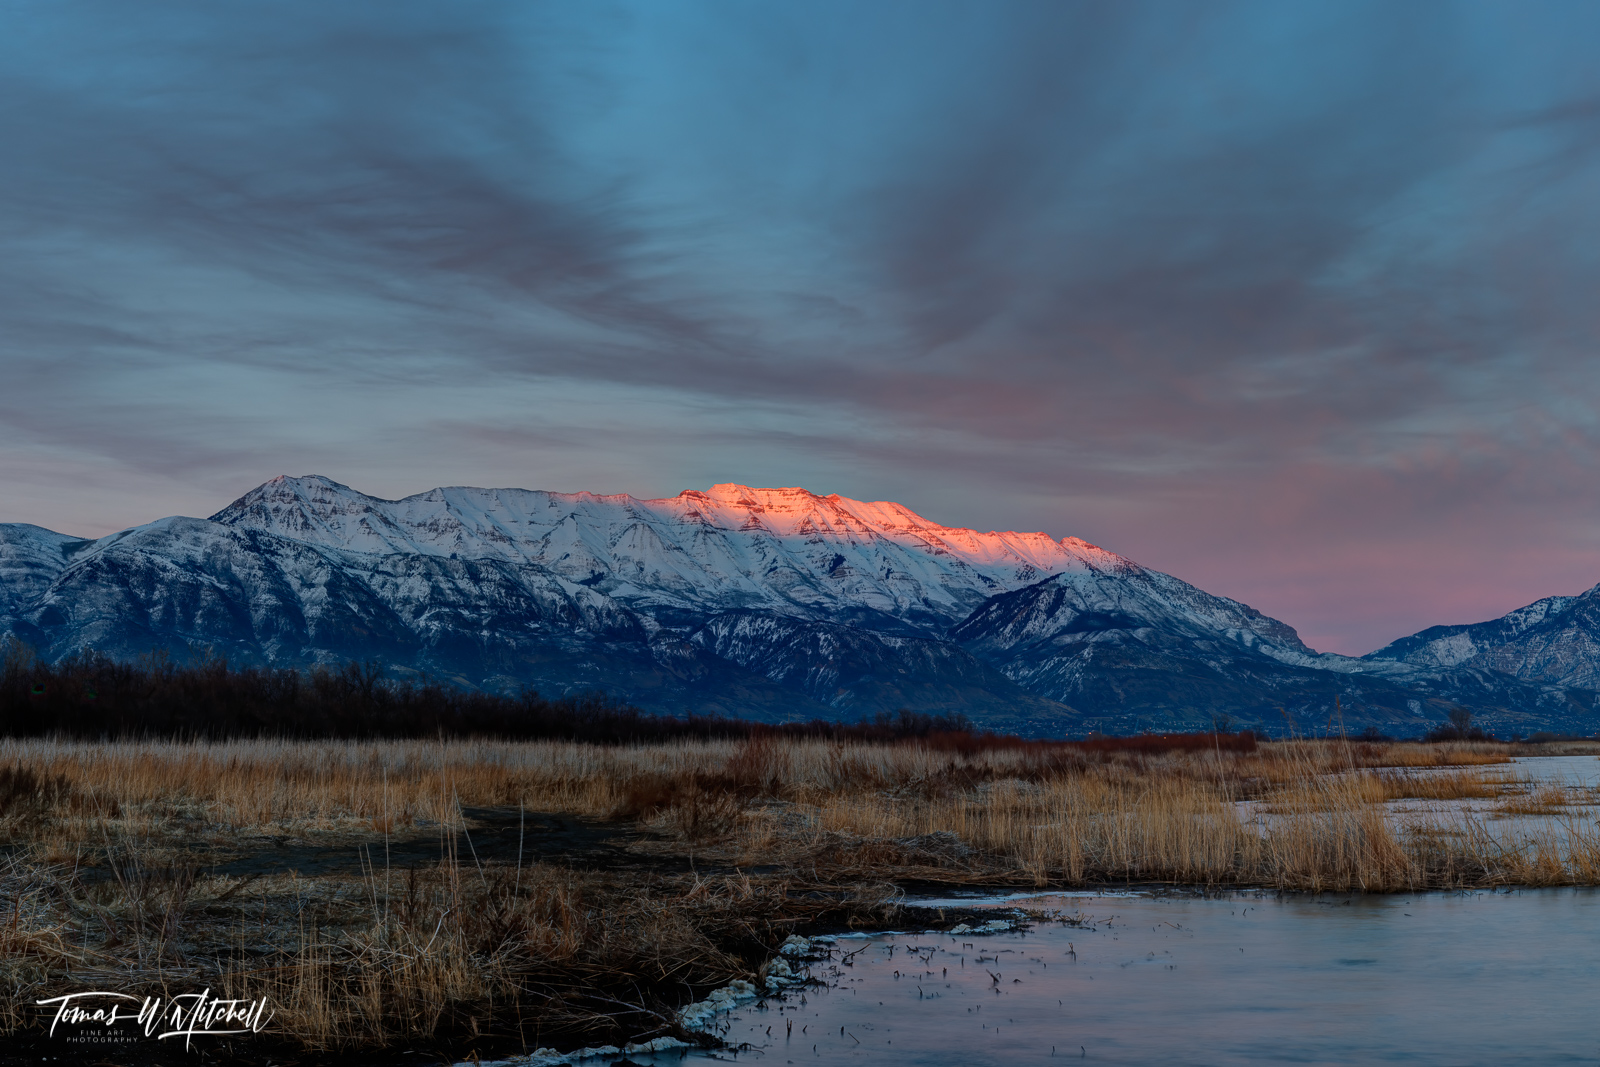 limited edition, fine art, prints, mount timpanogos, utah lake, mountain, winter, pink glow, sunset, photographs, photo